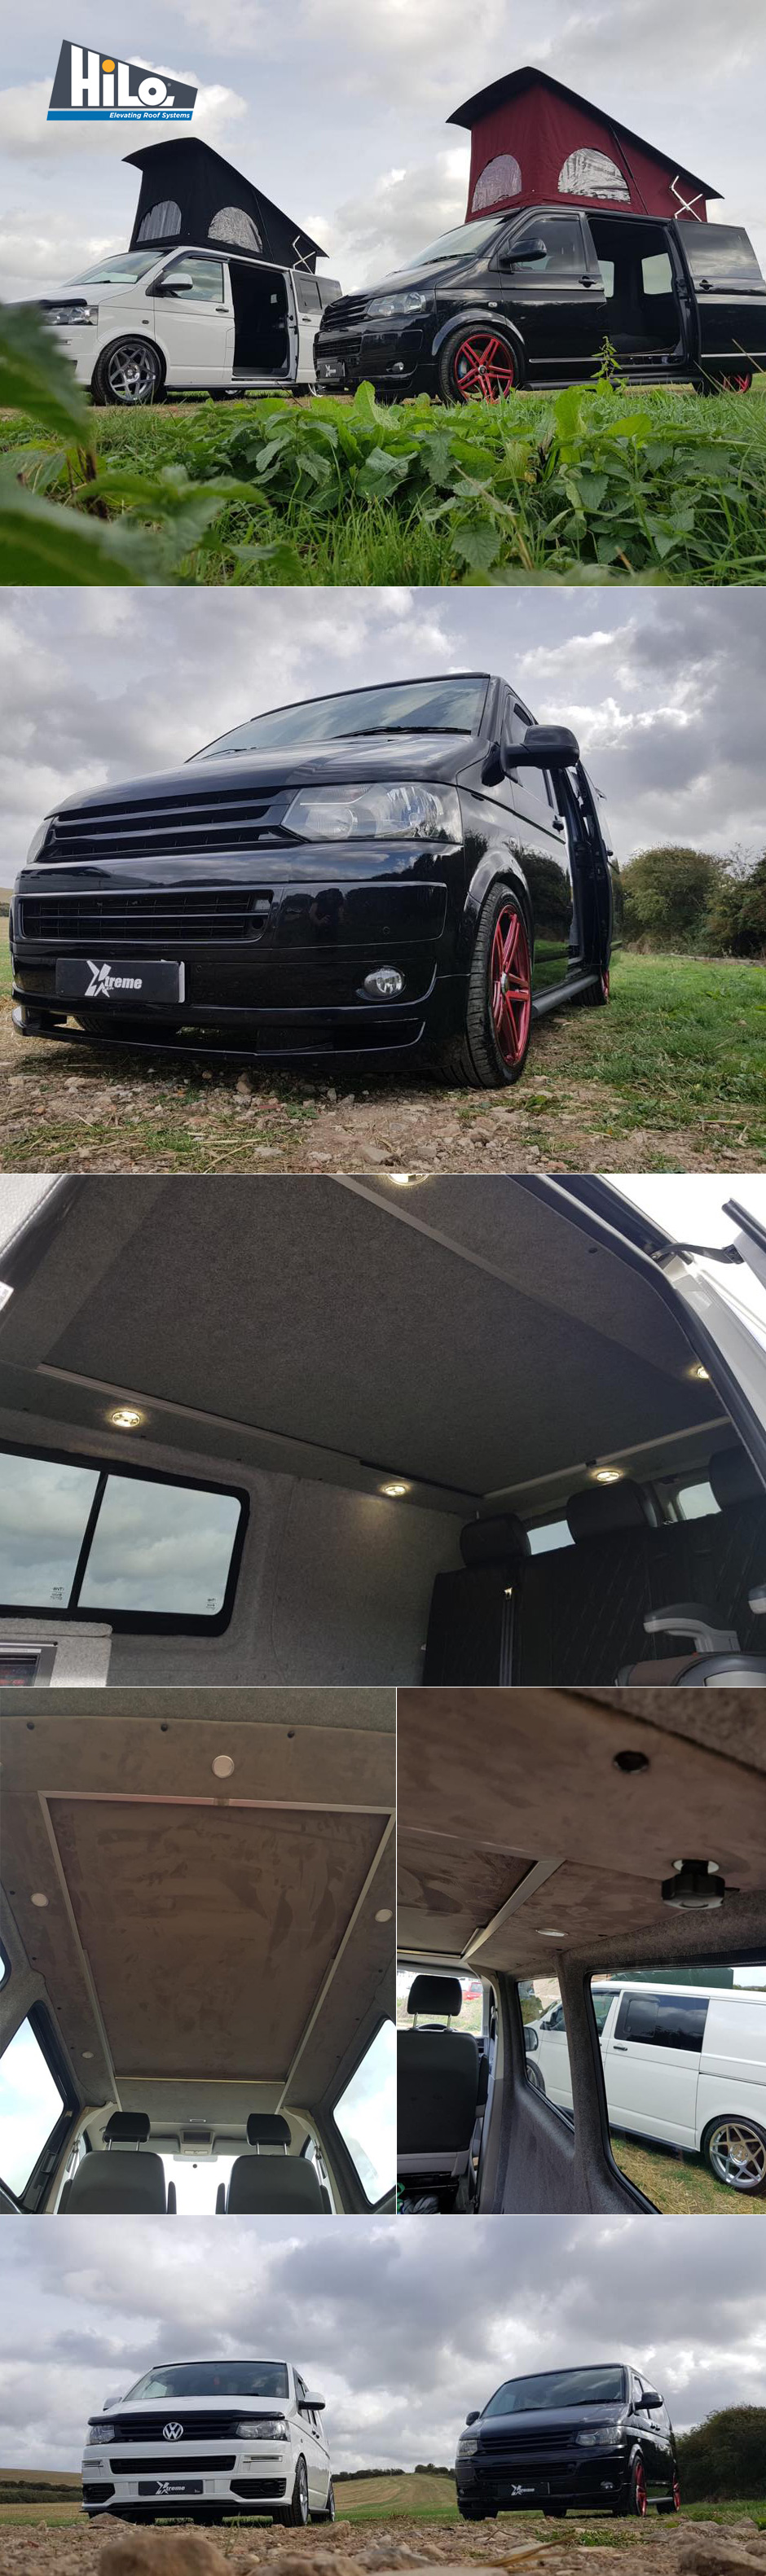 xtremevan hiloroof fitters and vw van conversions